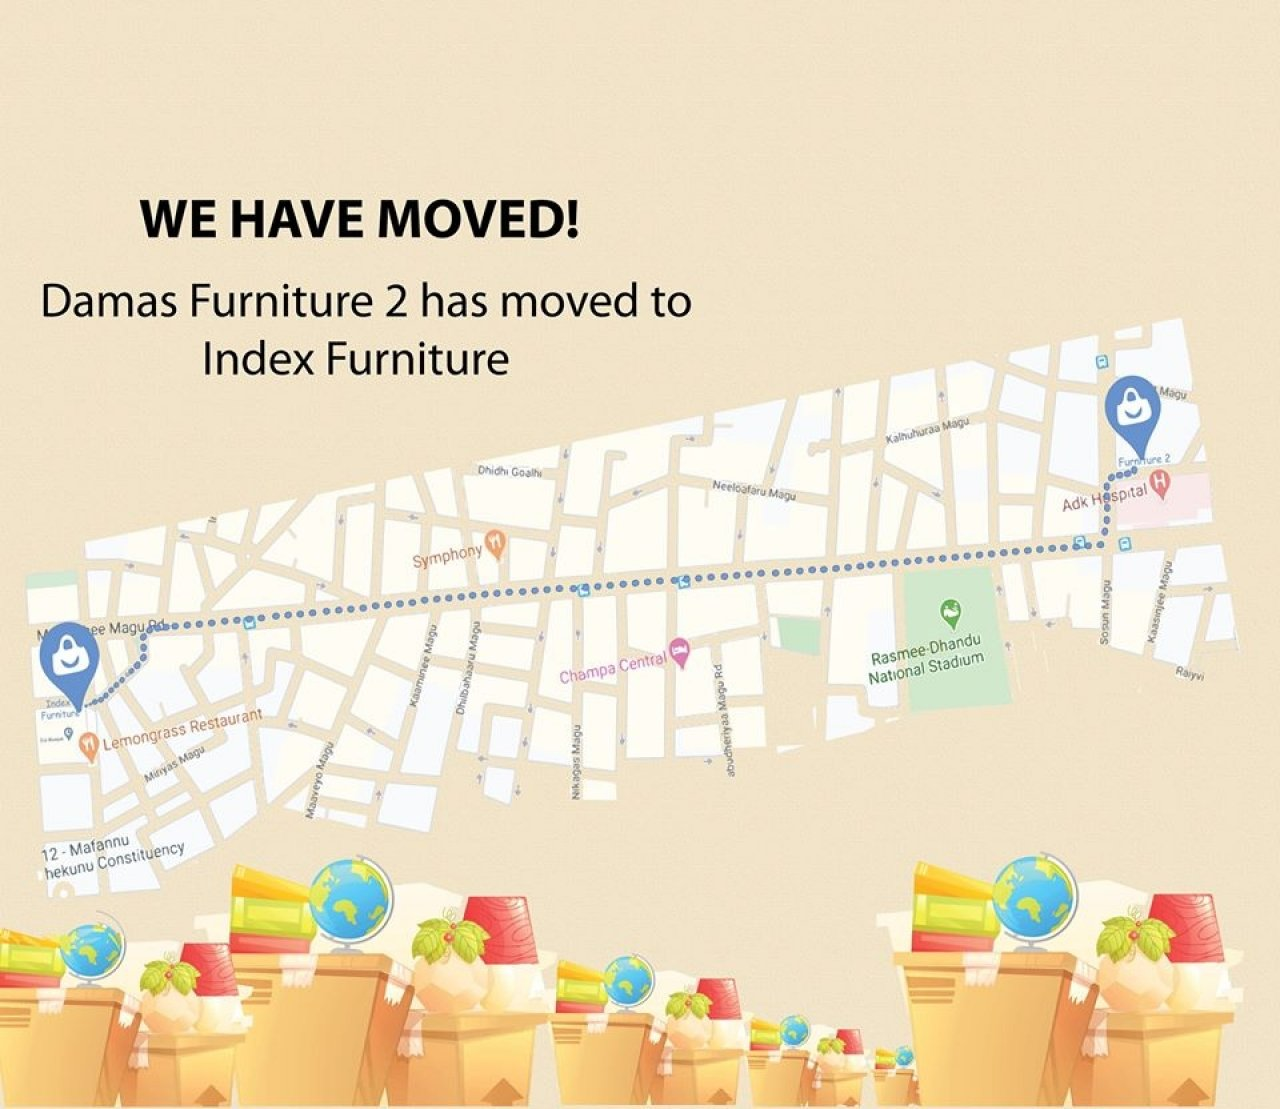 DAMAS FURNITURE 2 RELOCATES TO INDEX FURNITURE BY DAMAS